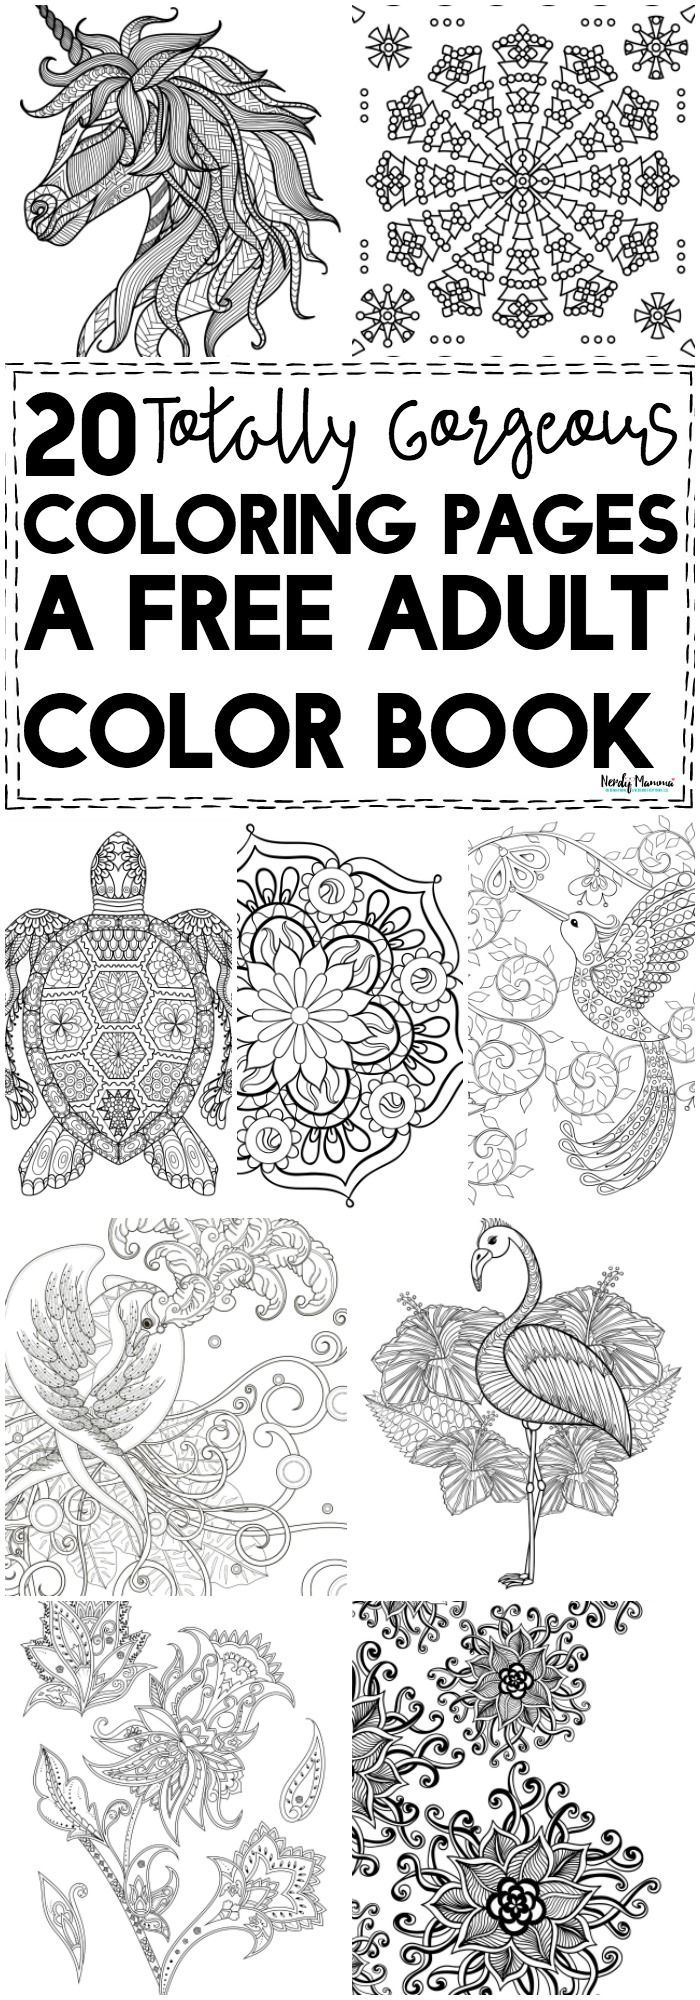 1150 best coloring images on pinterest coloring books coloring